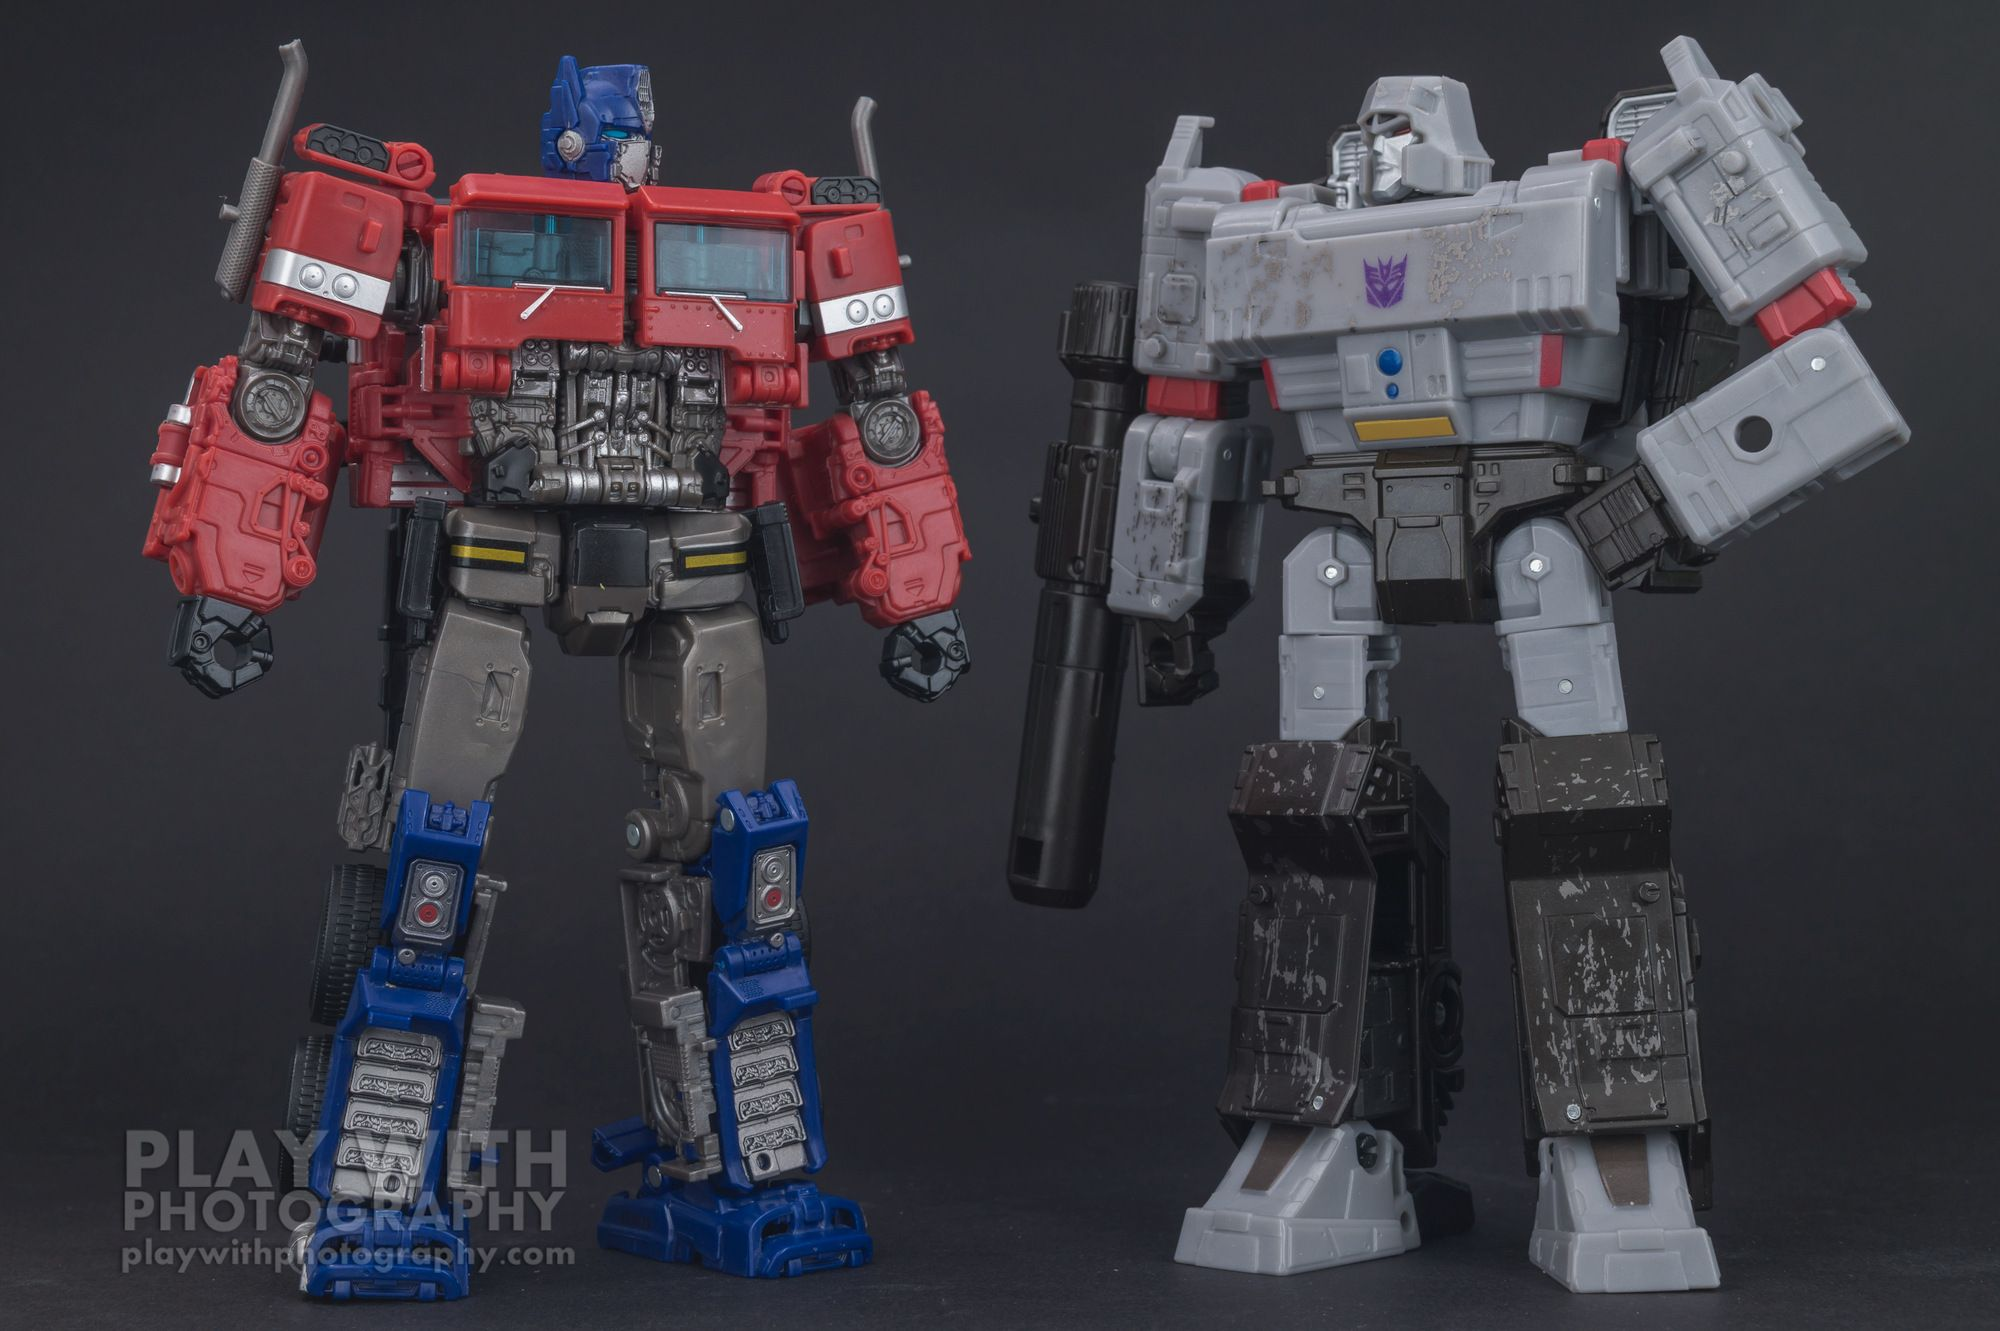 Studio Series 38 Bumblebee Movie Optimus Prime Out At Select Stores In The Us New Pics Optimus Prime Toy Optimus Prime Transformers Prime